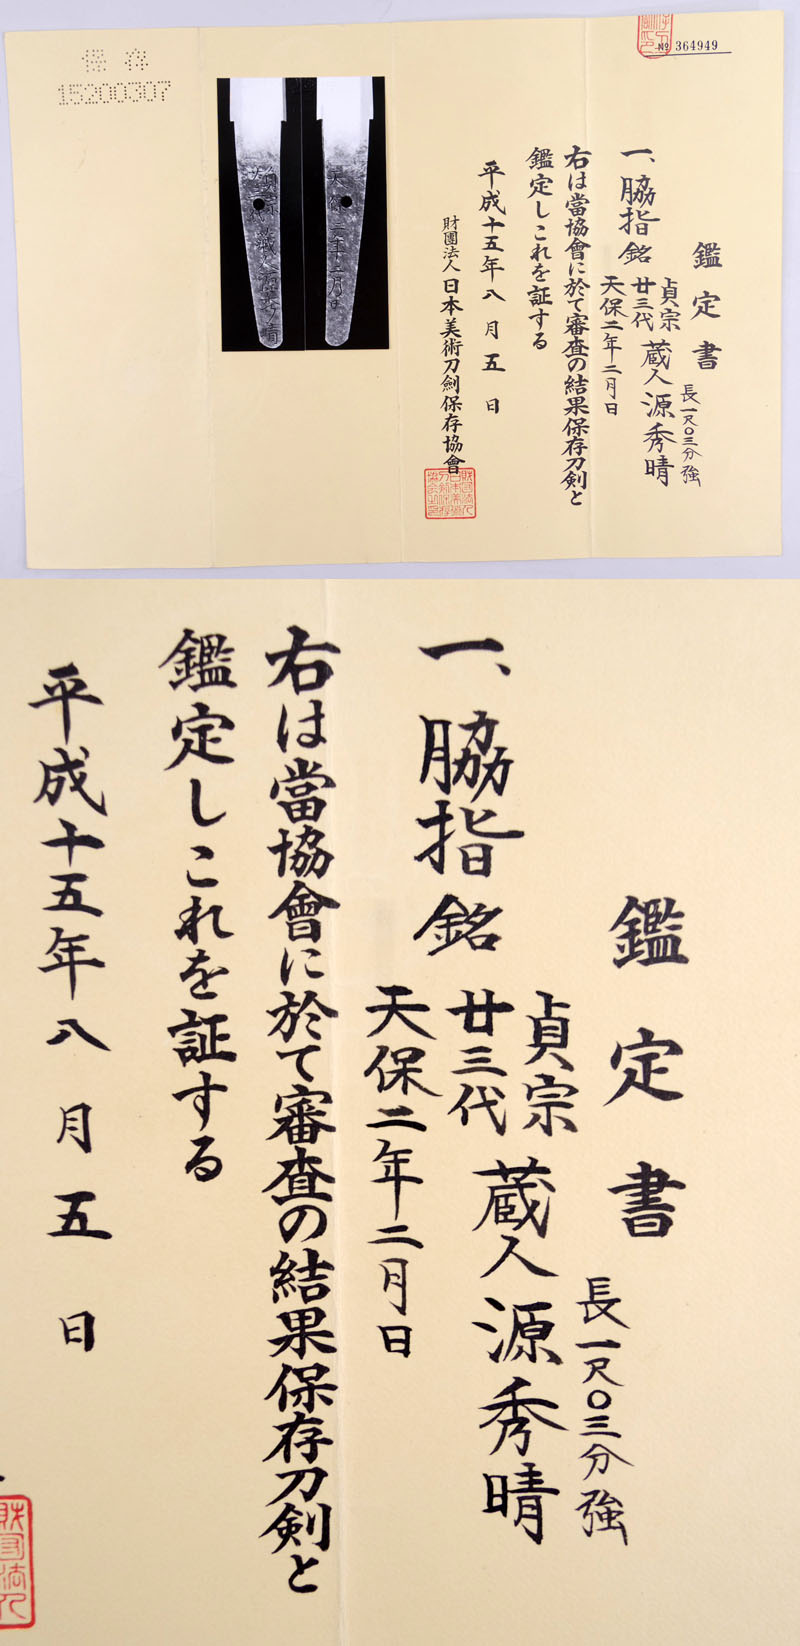 貞宗廿3代蔵人源秀晴 Picture of Certificate